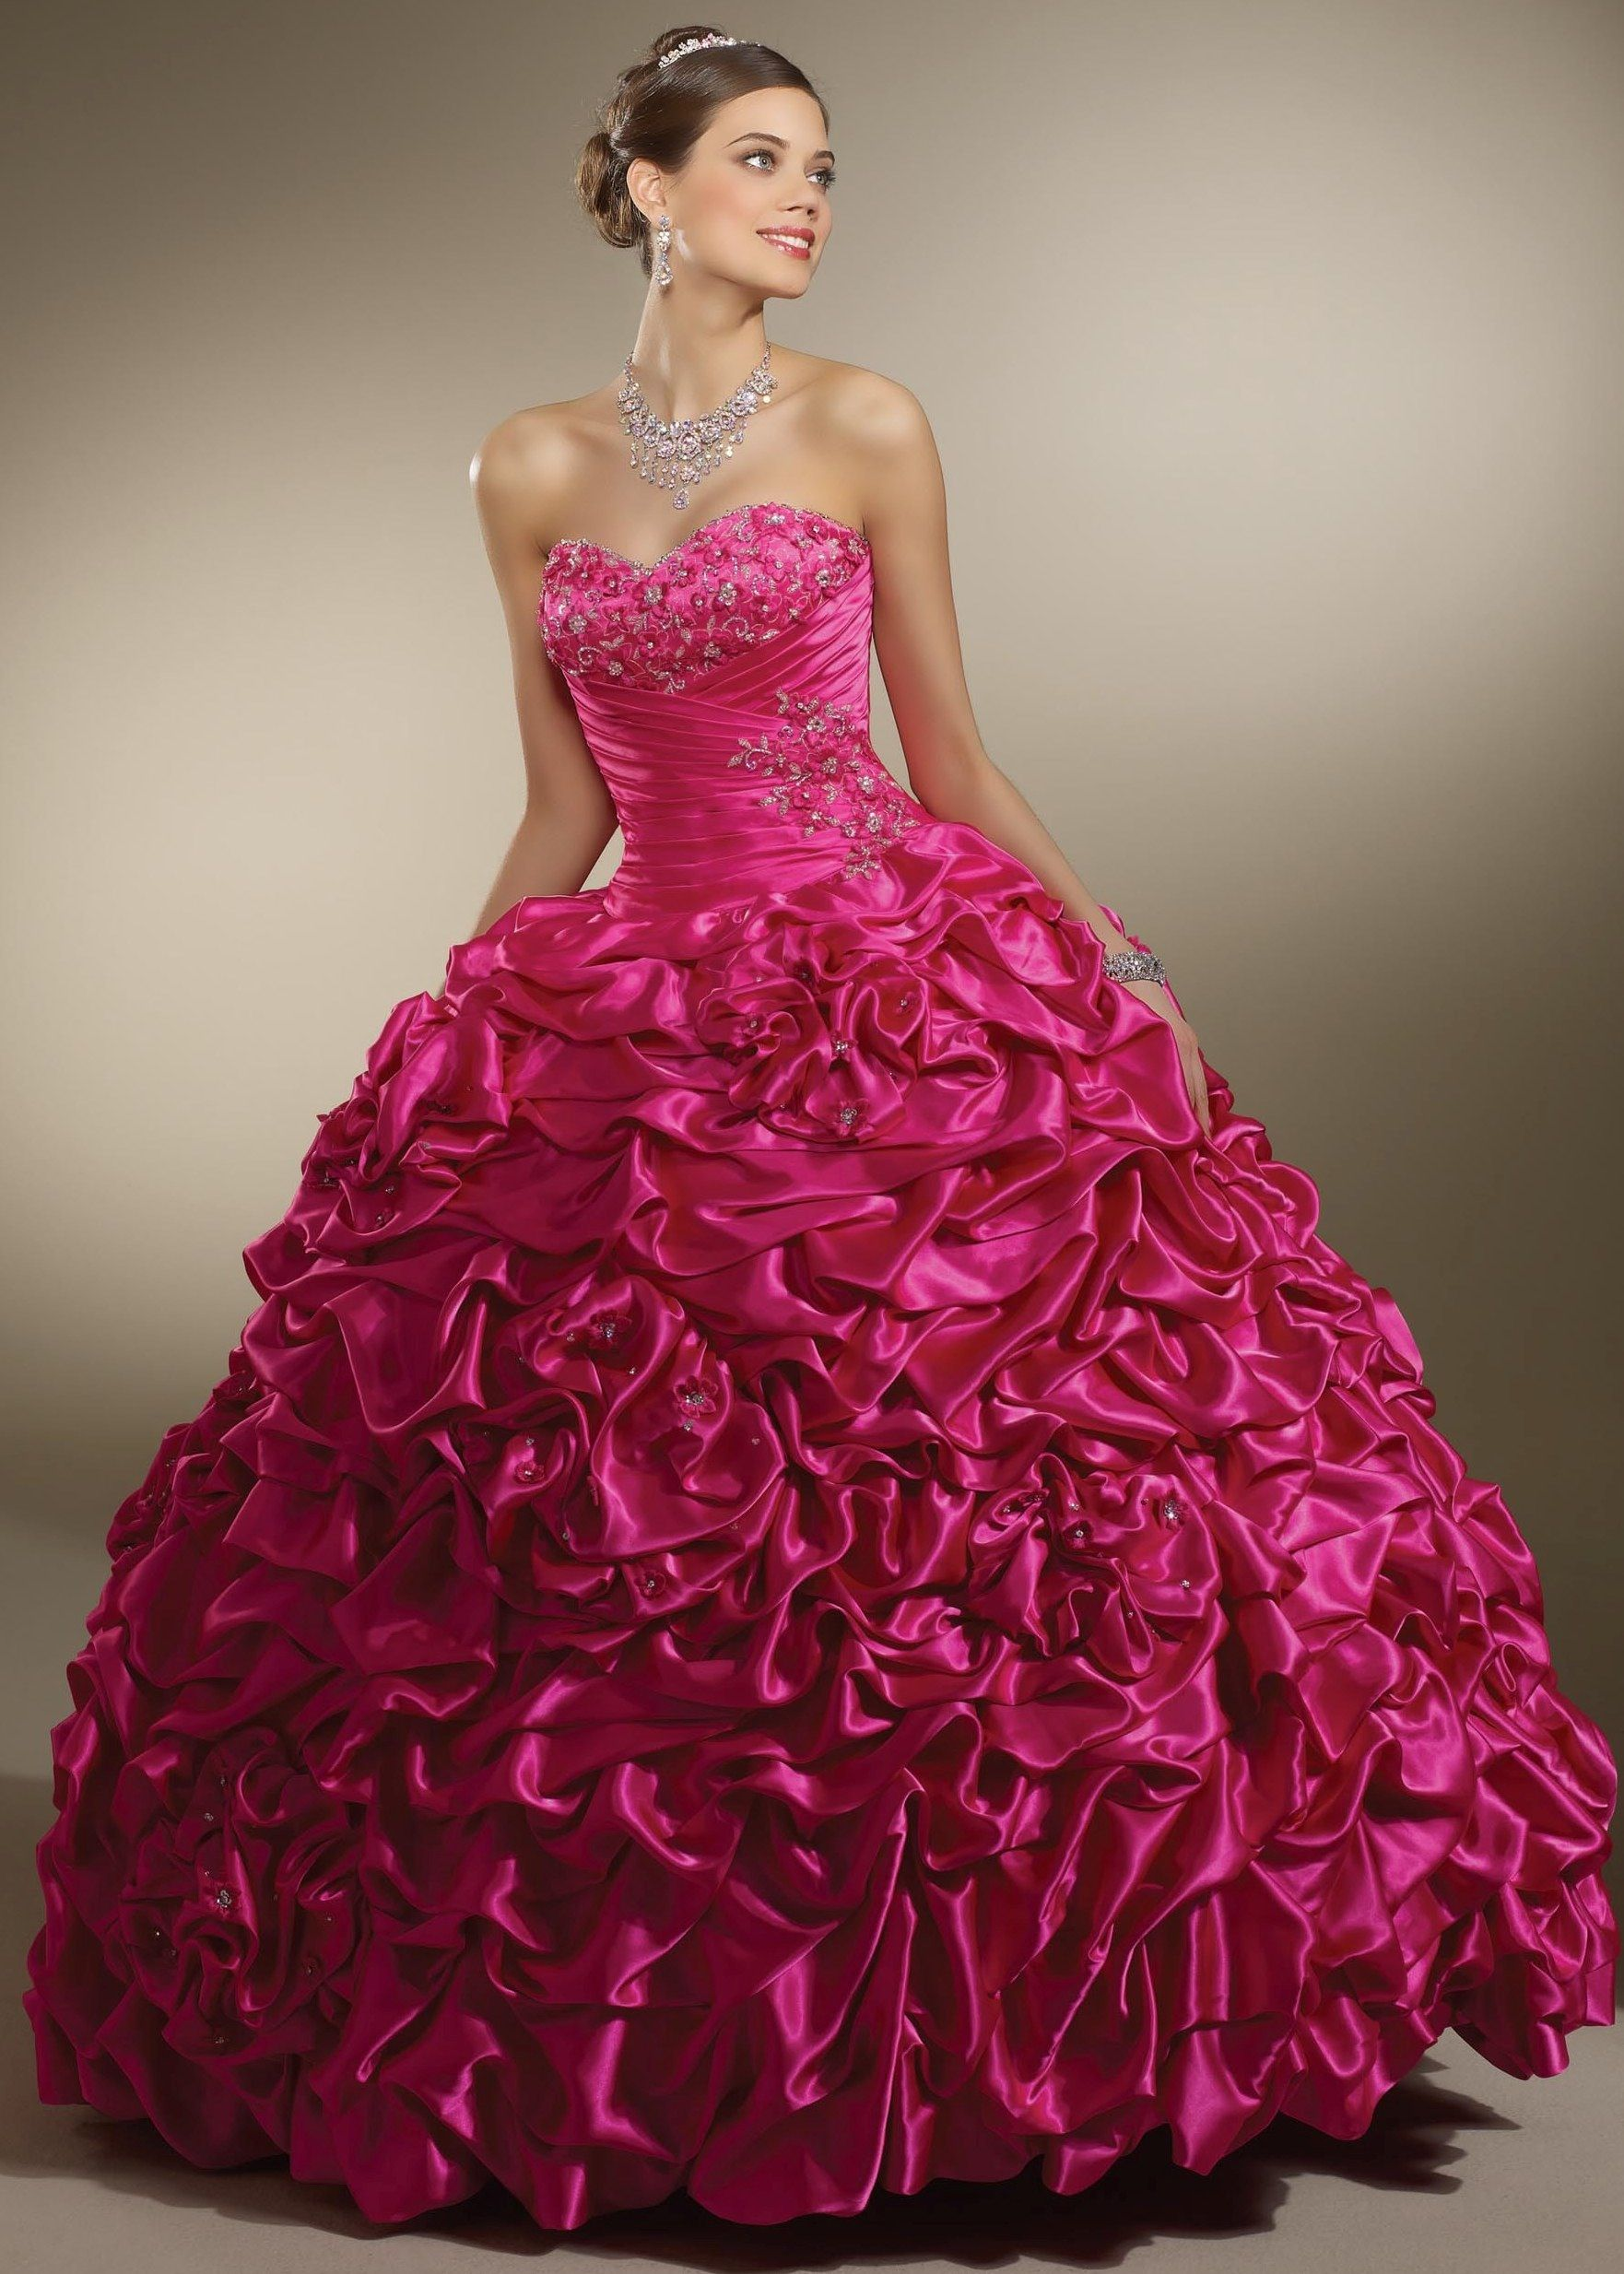 Hollywood rose princess dresses and crowns pinterest quince